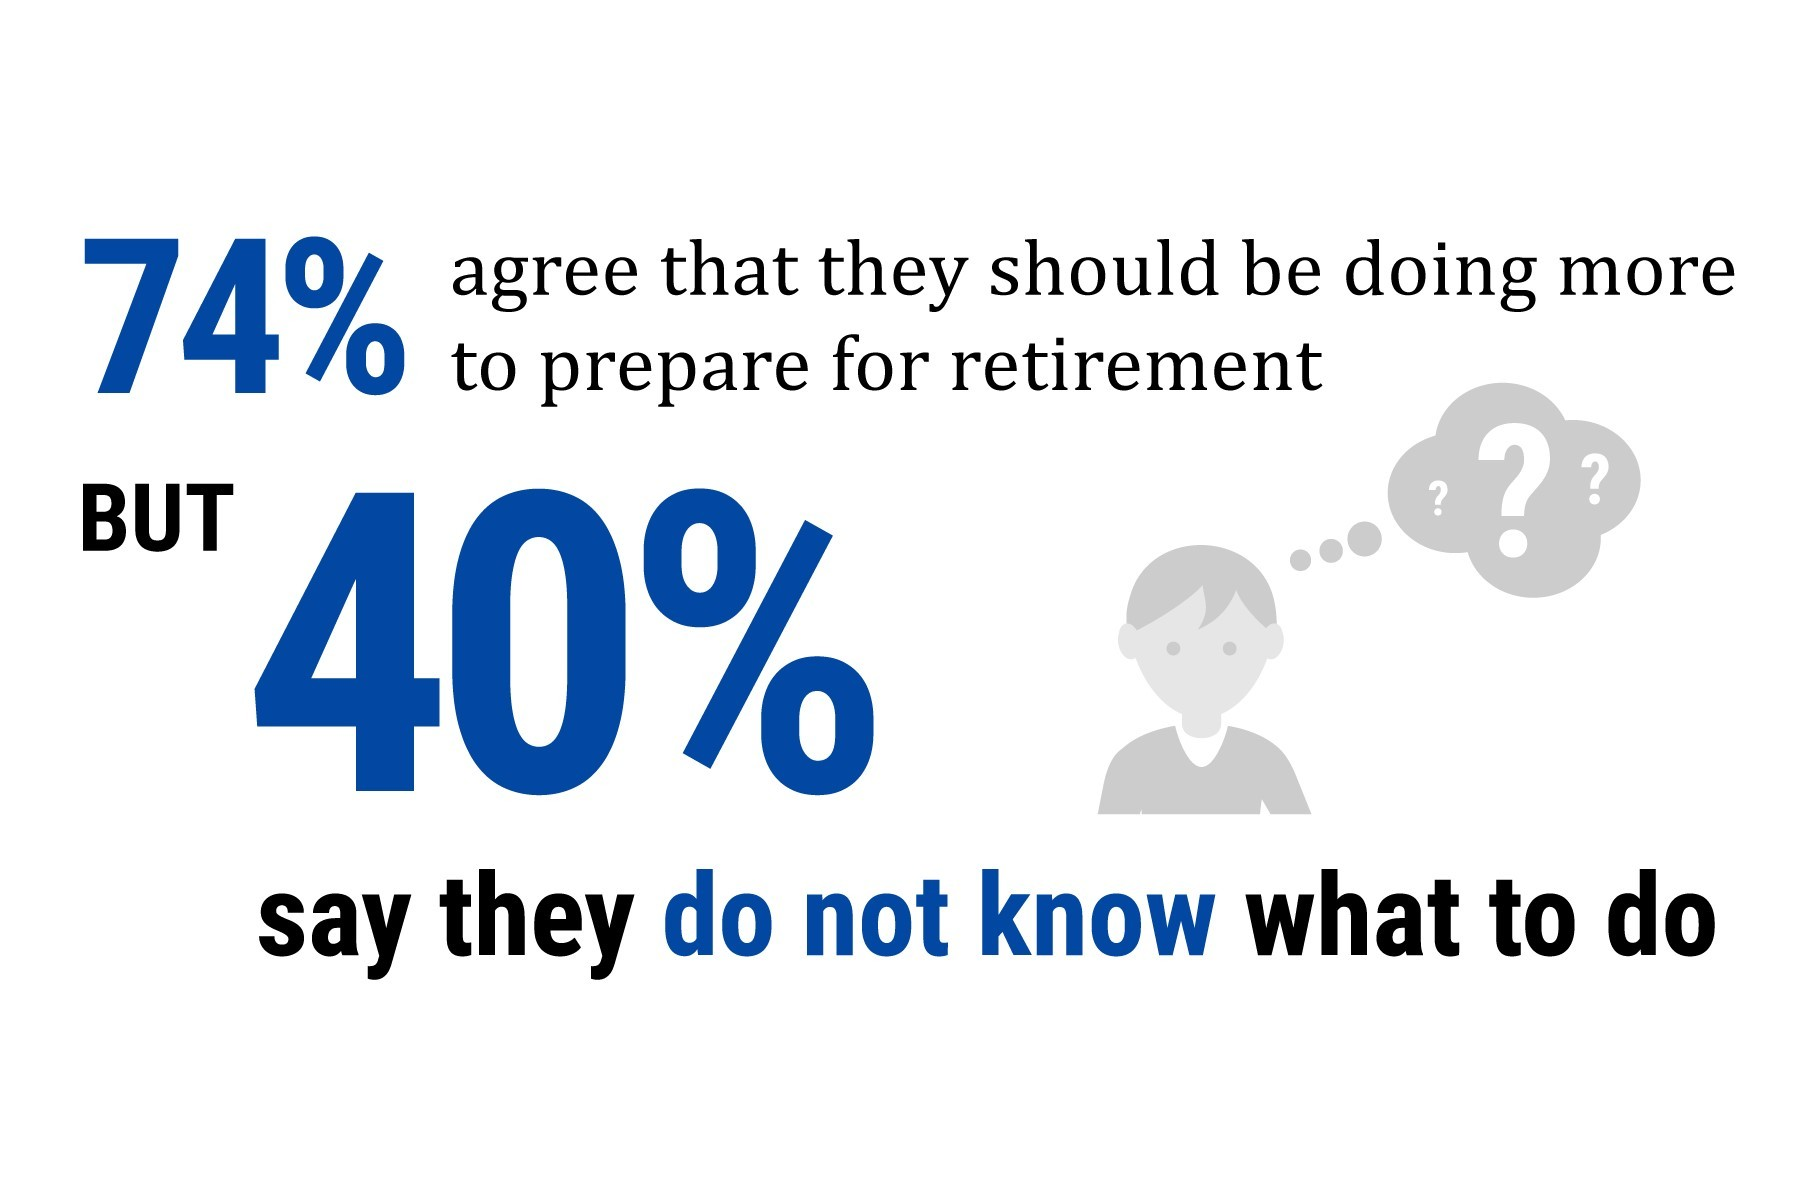 Seventy-four percent of Americans surveyed want to do more to save for retirement, but 40 percent say they don't know what to do. (Photo: Business Wire)